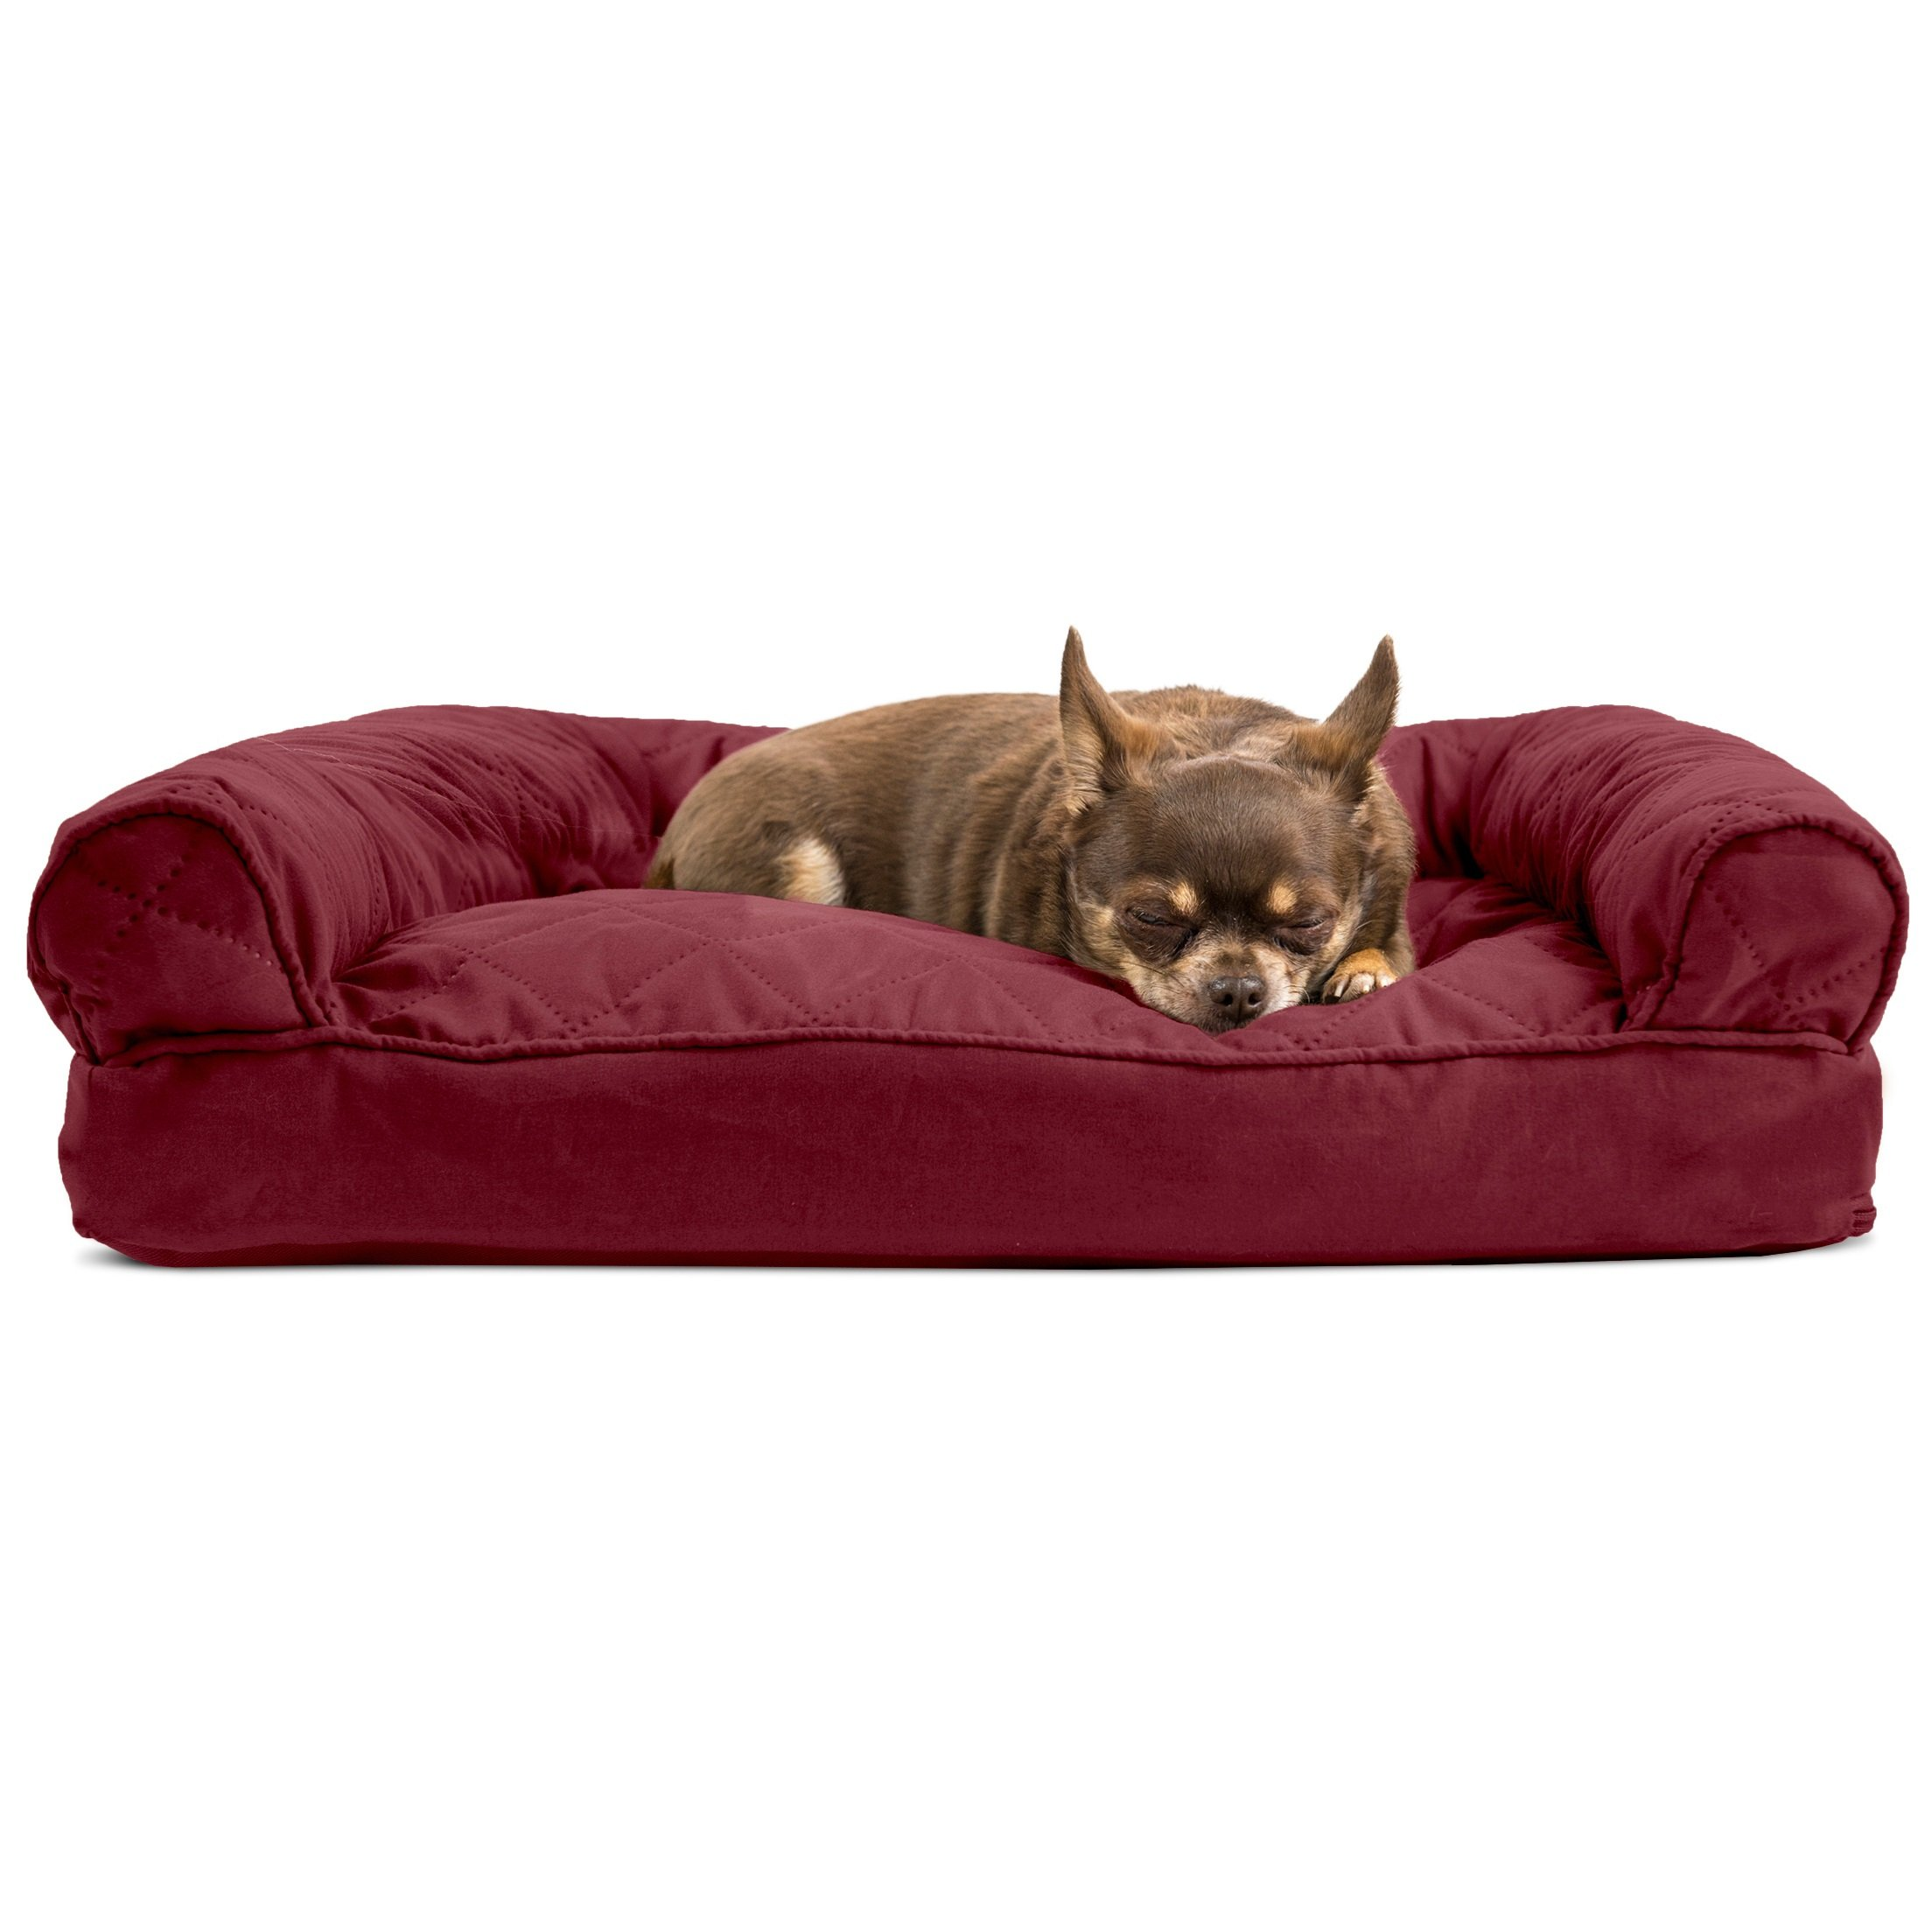 Medium 1 Piece Red Burgundy Color Quilted Pillow Sofa Style Pet Bed Dog Cat Kitten Puppy Doggy Animal Four Legged Superbly Snuggly Beautiful Soft Cozy Luxurious Comfortable Easy Feel Relax